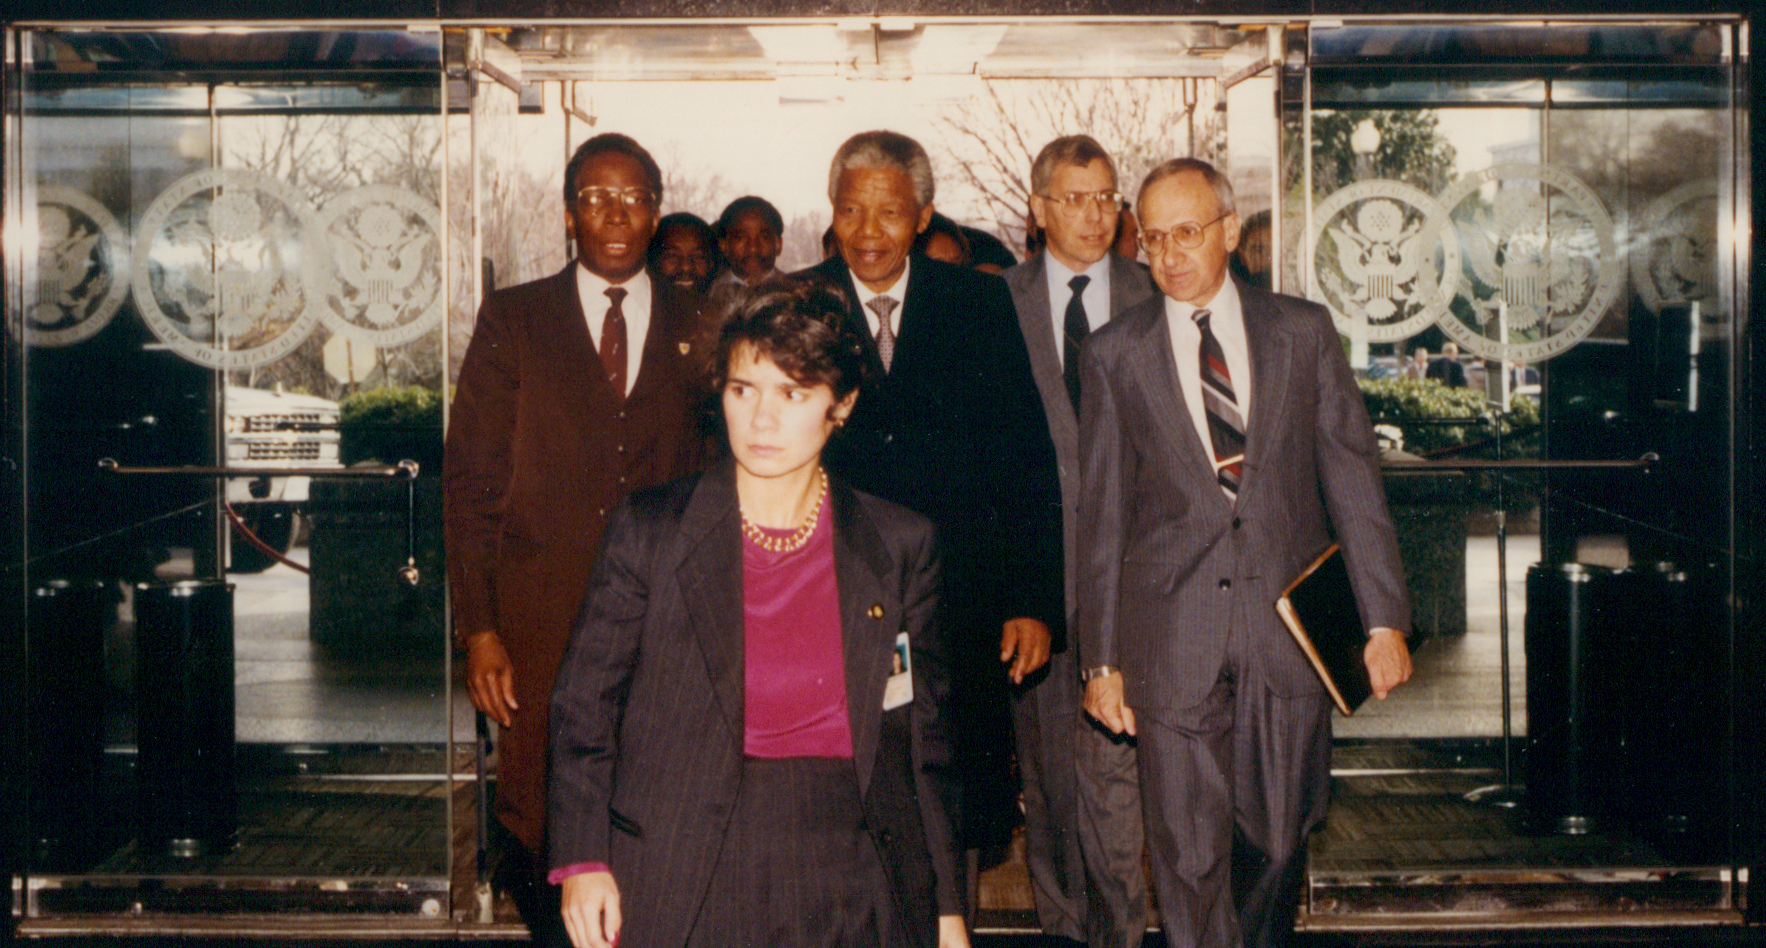 The late South African president Nelson Mandela, recently released after twenty-seven years in prison, enters the State Department with Cohenat the beginning of his first official visit to the United States in March 1990.